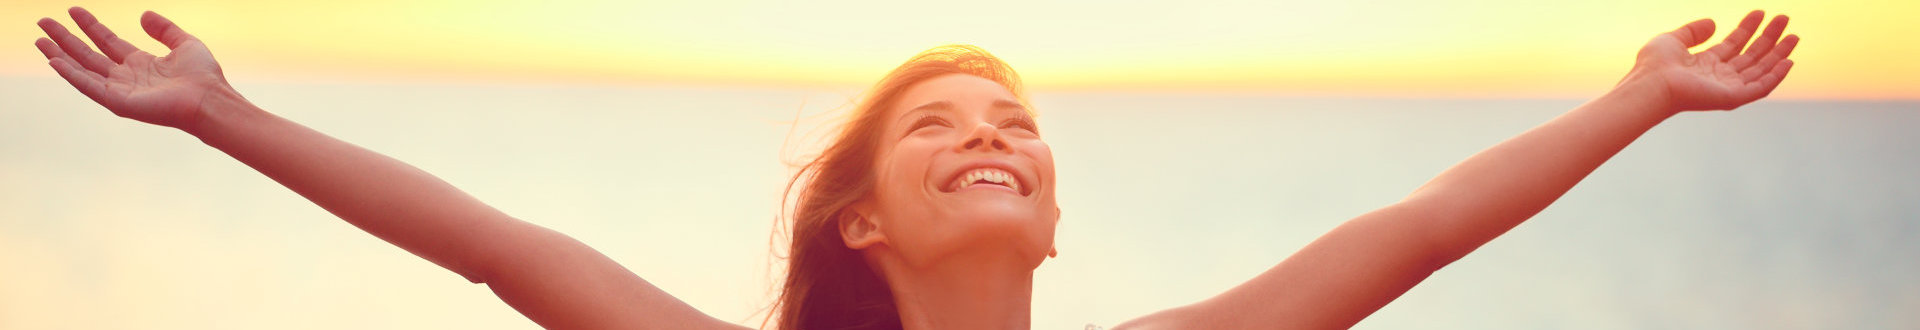 woman smiling with nice scenery